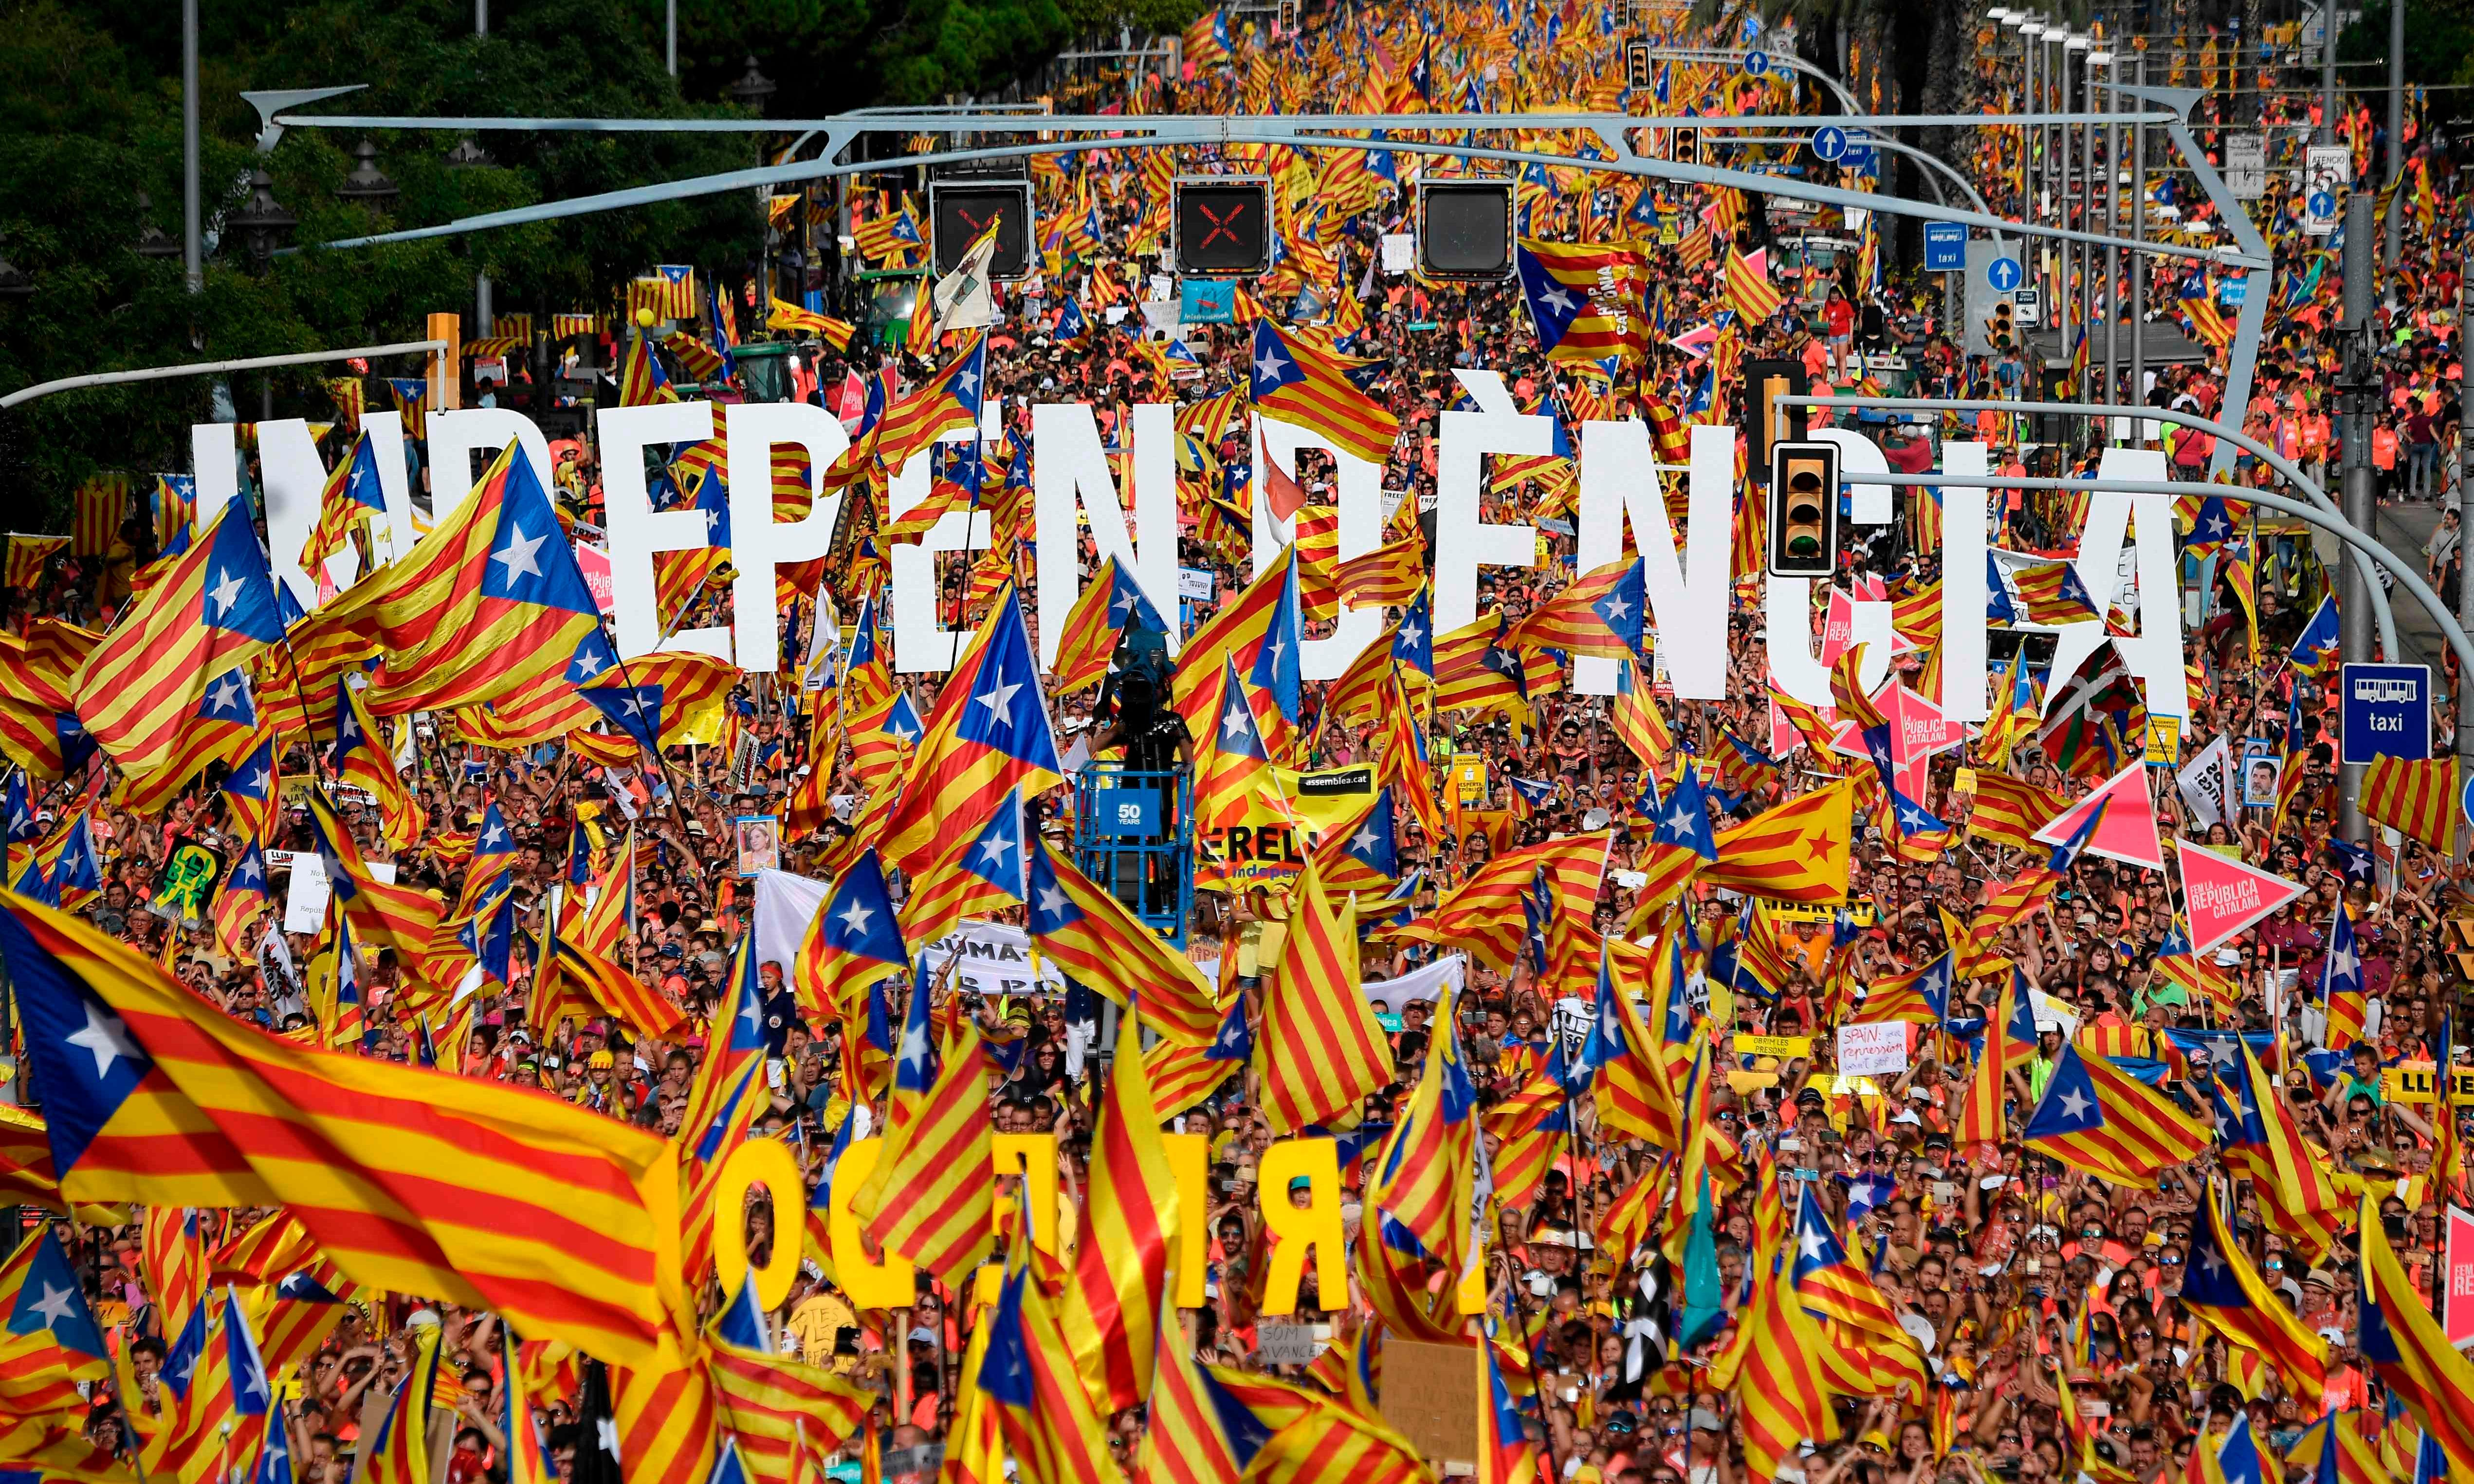 The key figures in the push for Catalan independence